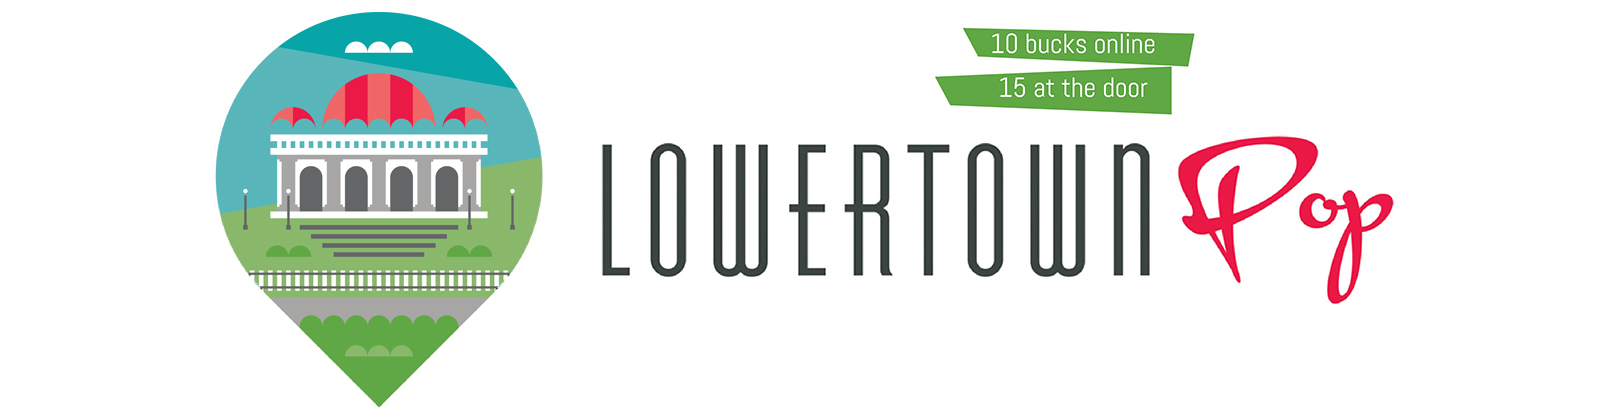 Lowertown-Pop-Graphic-1.jpg